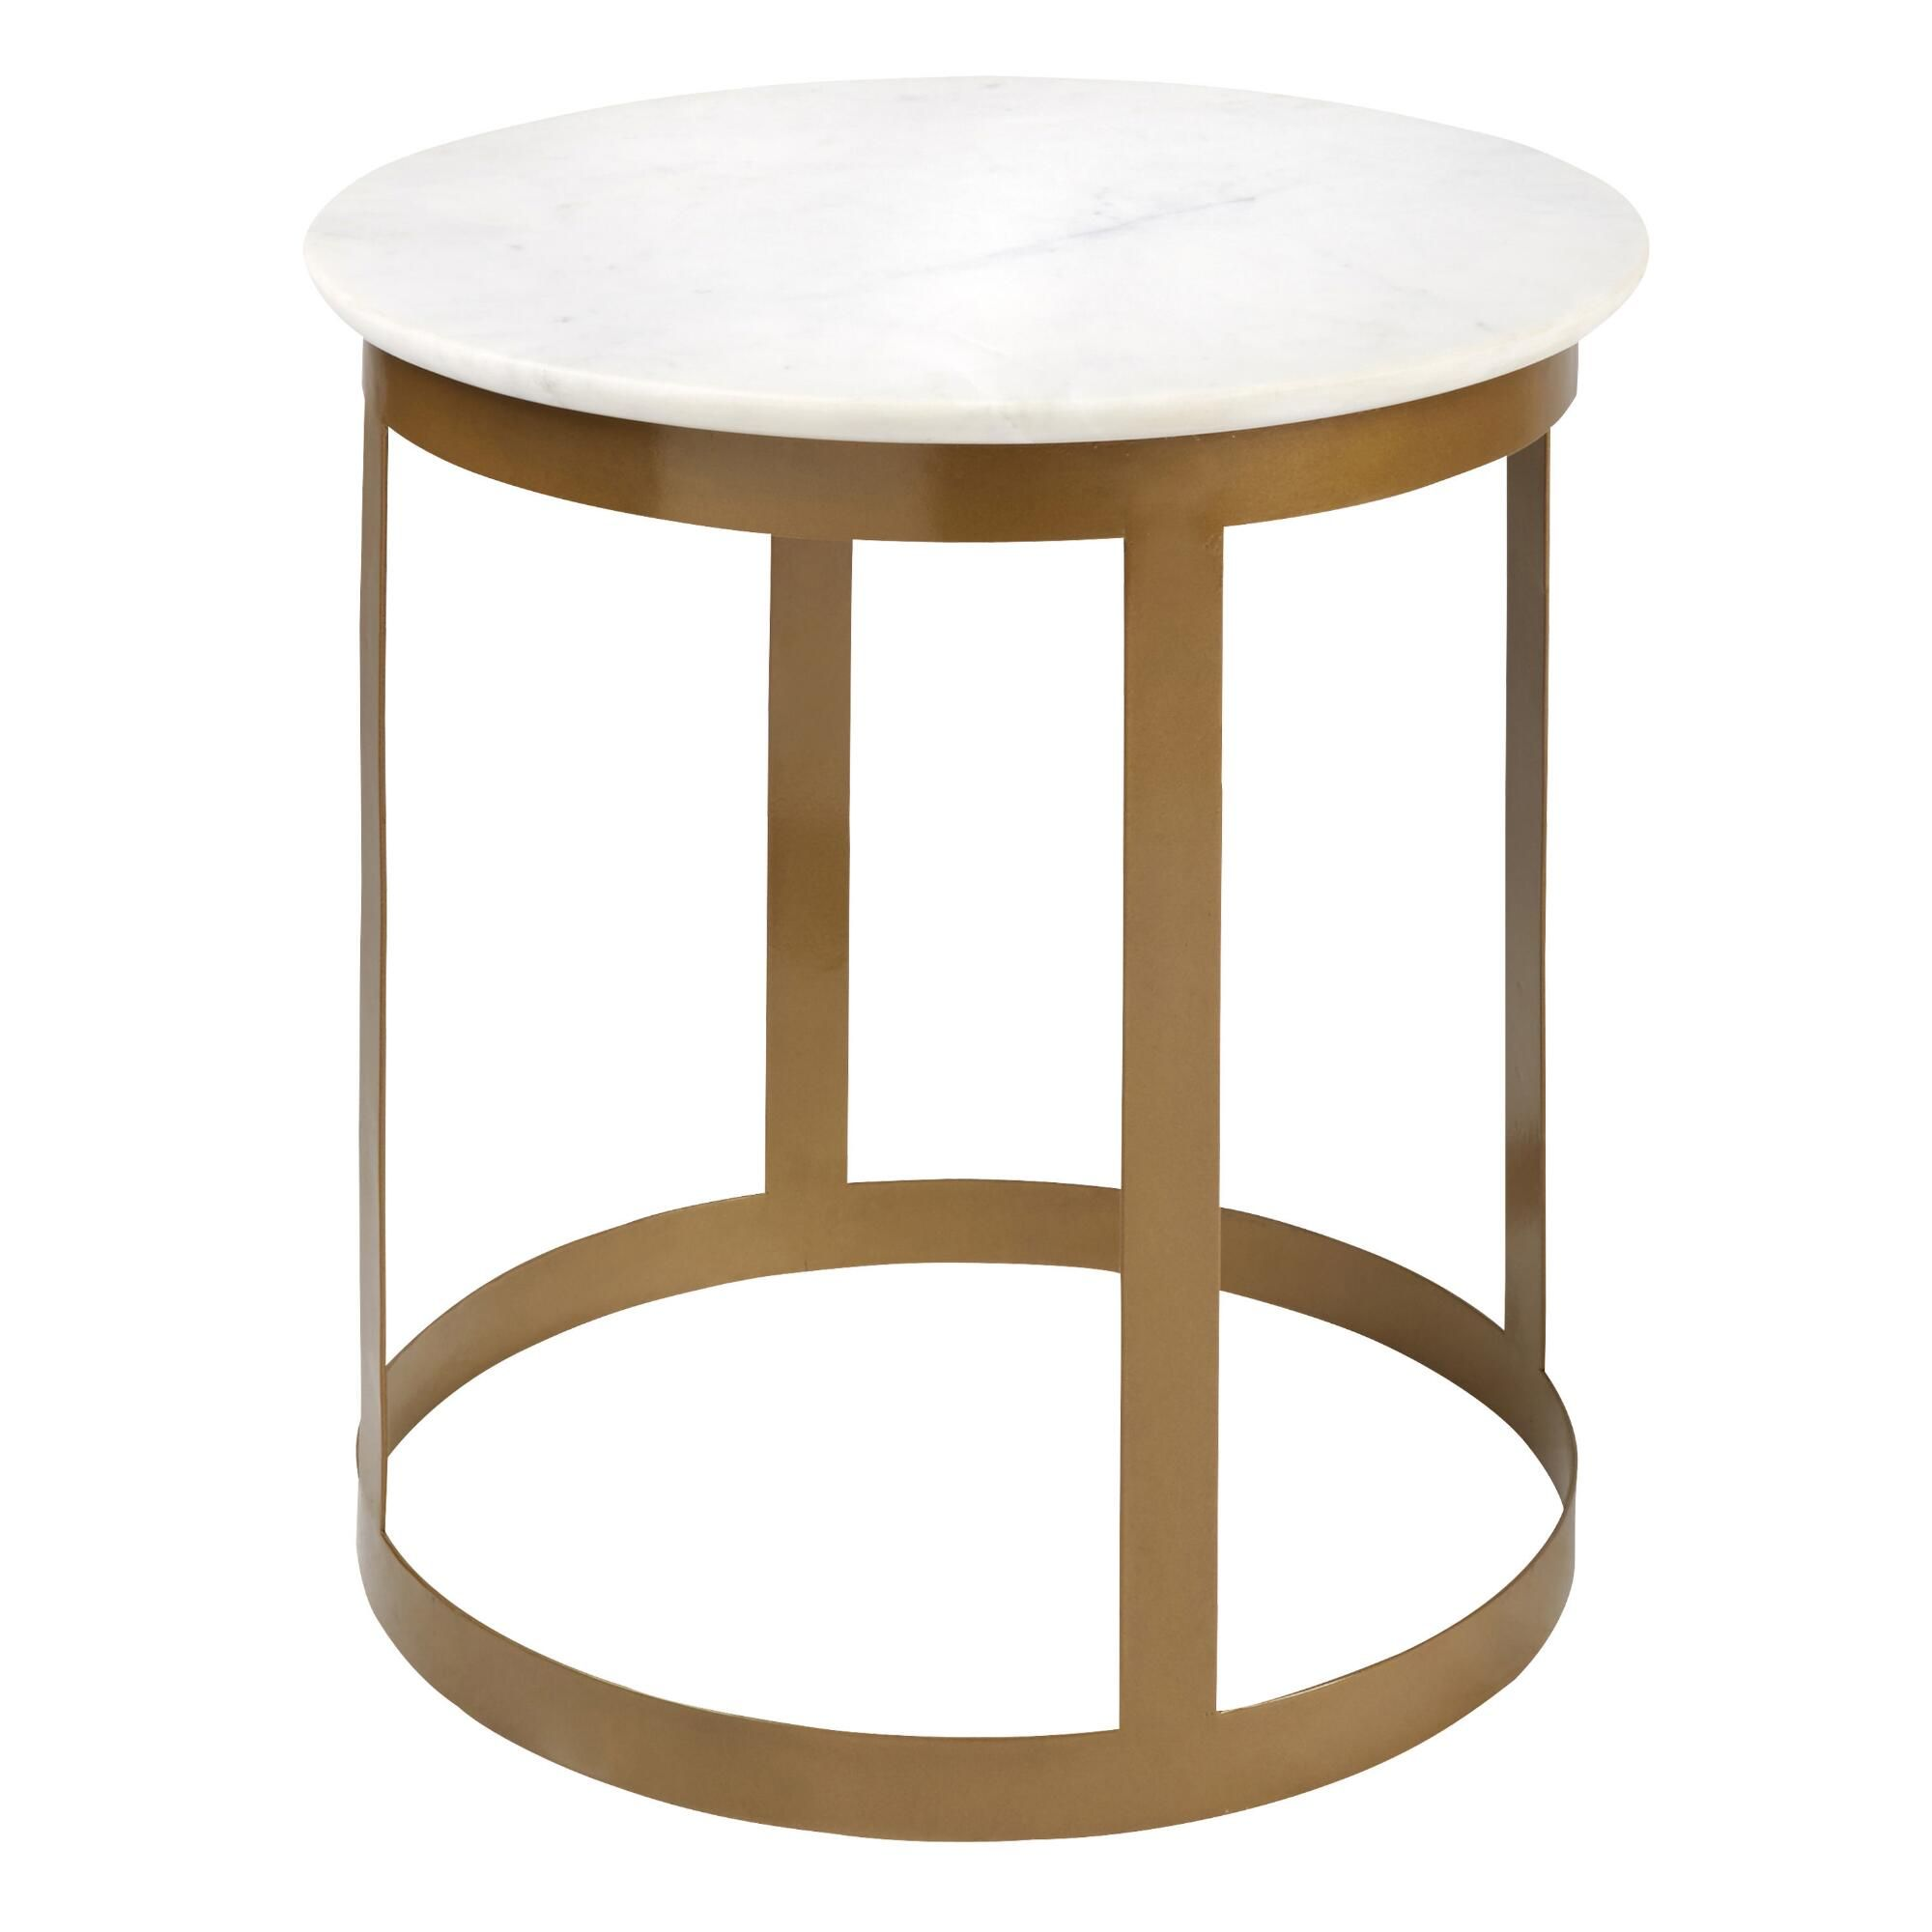 gold frame round accent table with marble top tree marbles rattan garden furniture homebase wicker patio and chairs lamp modern design little small black wood end tables white